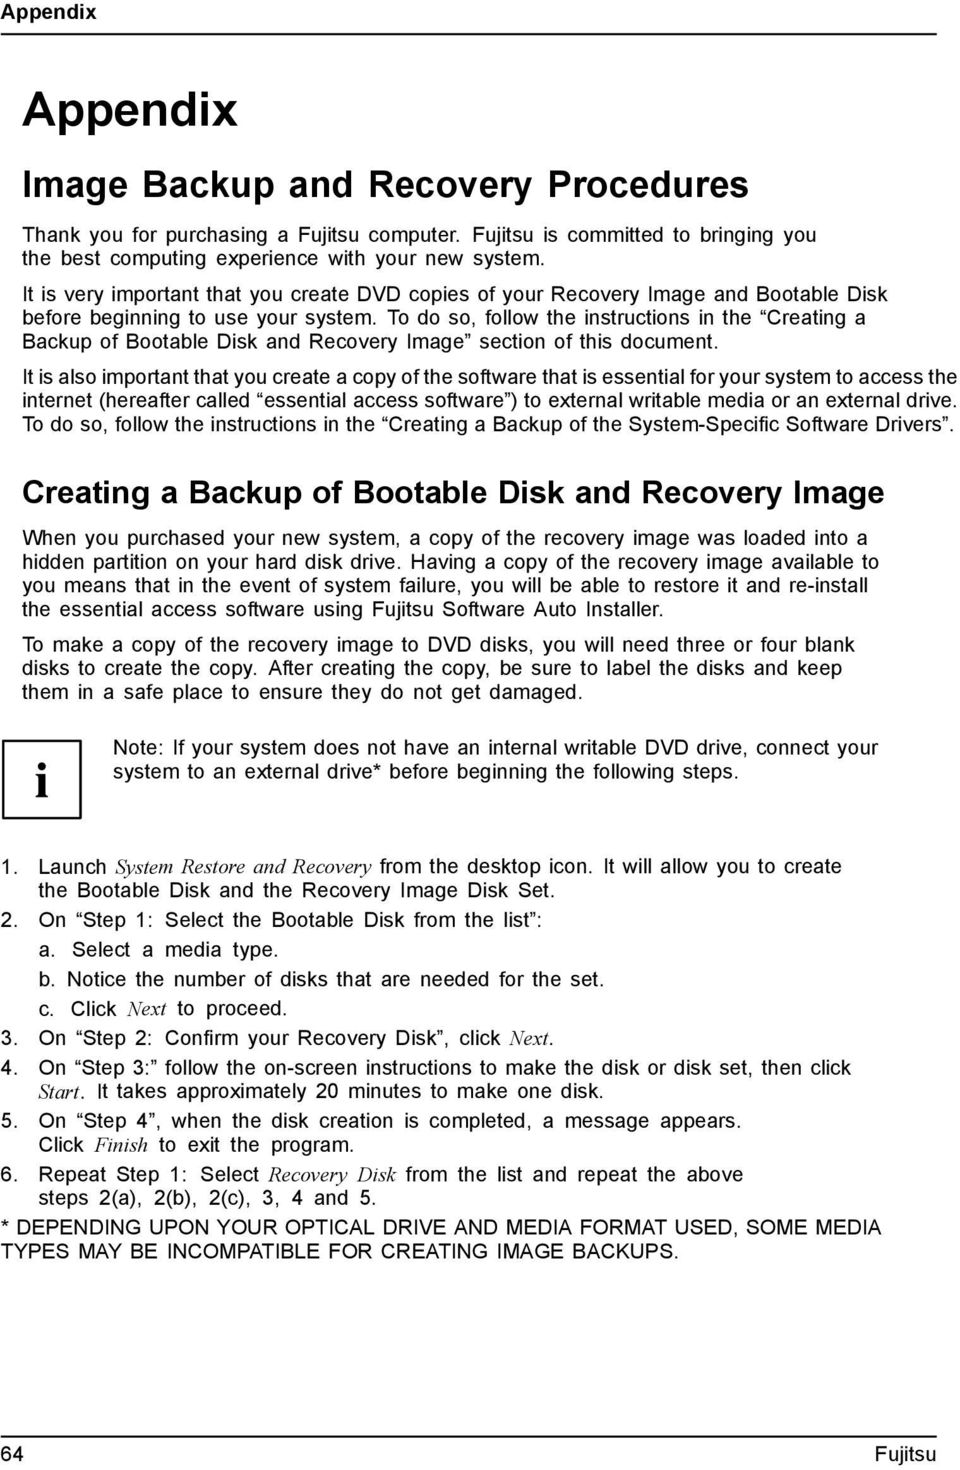 To do so, follow the instructions in the Creating a Backup of Bootable Disk and Recovery Image section of this document.